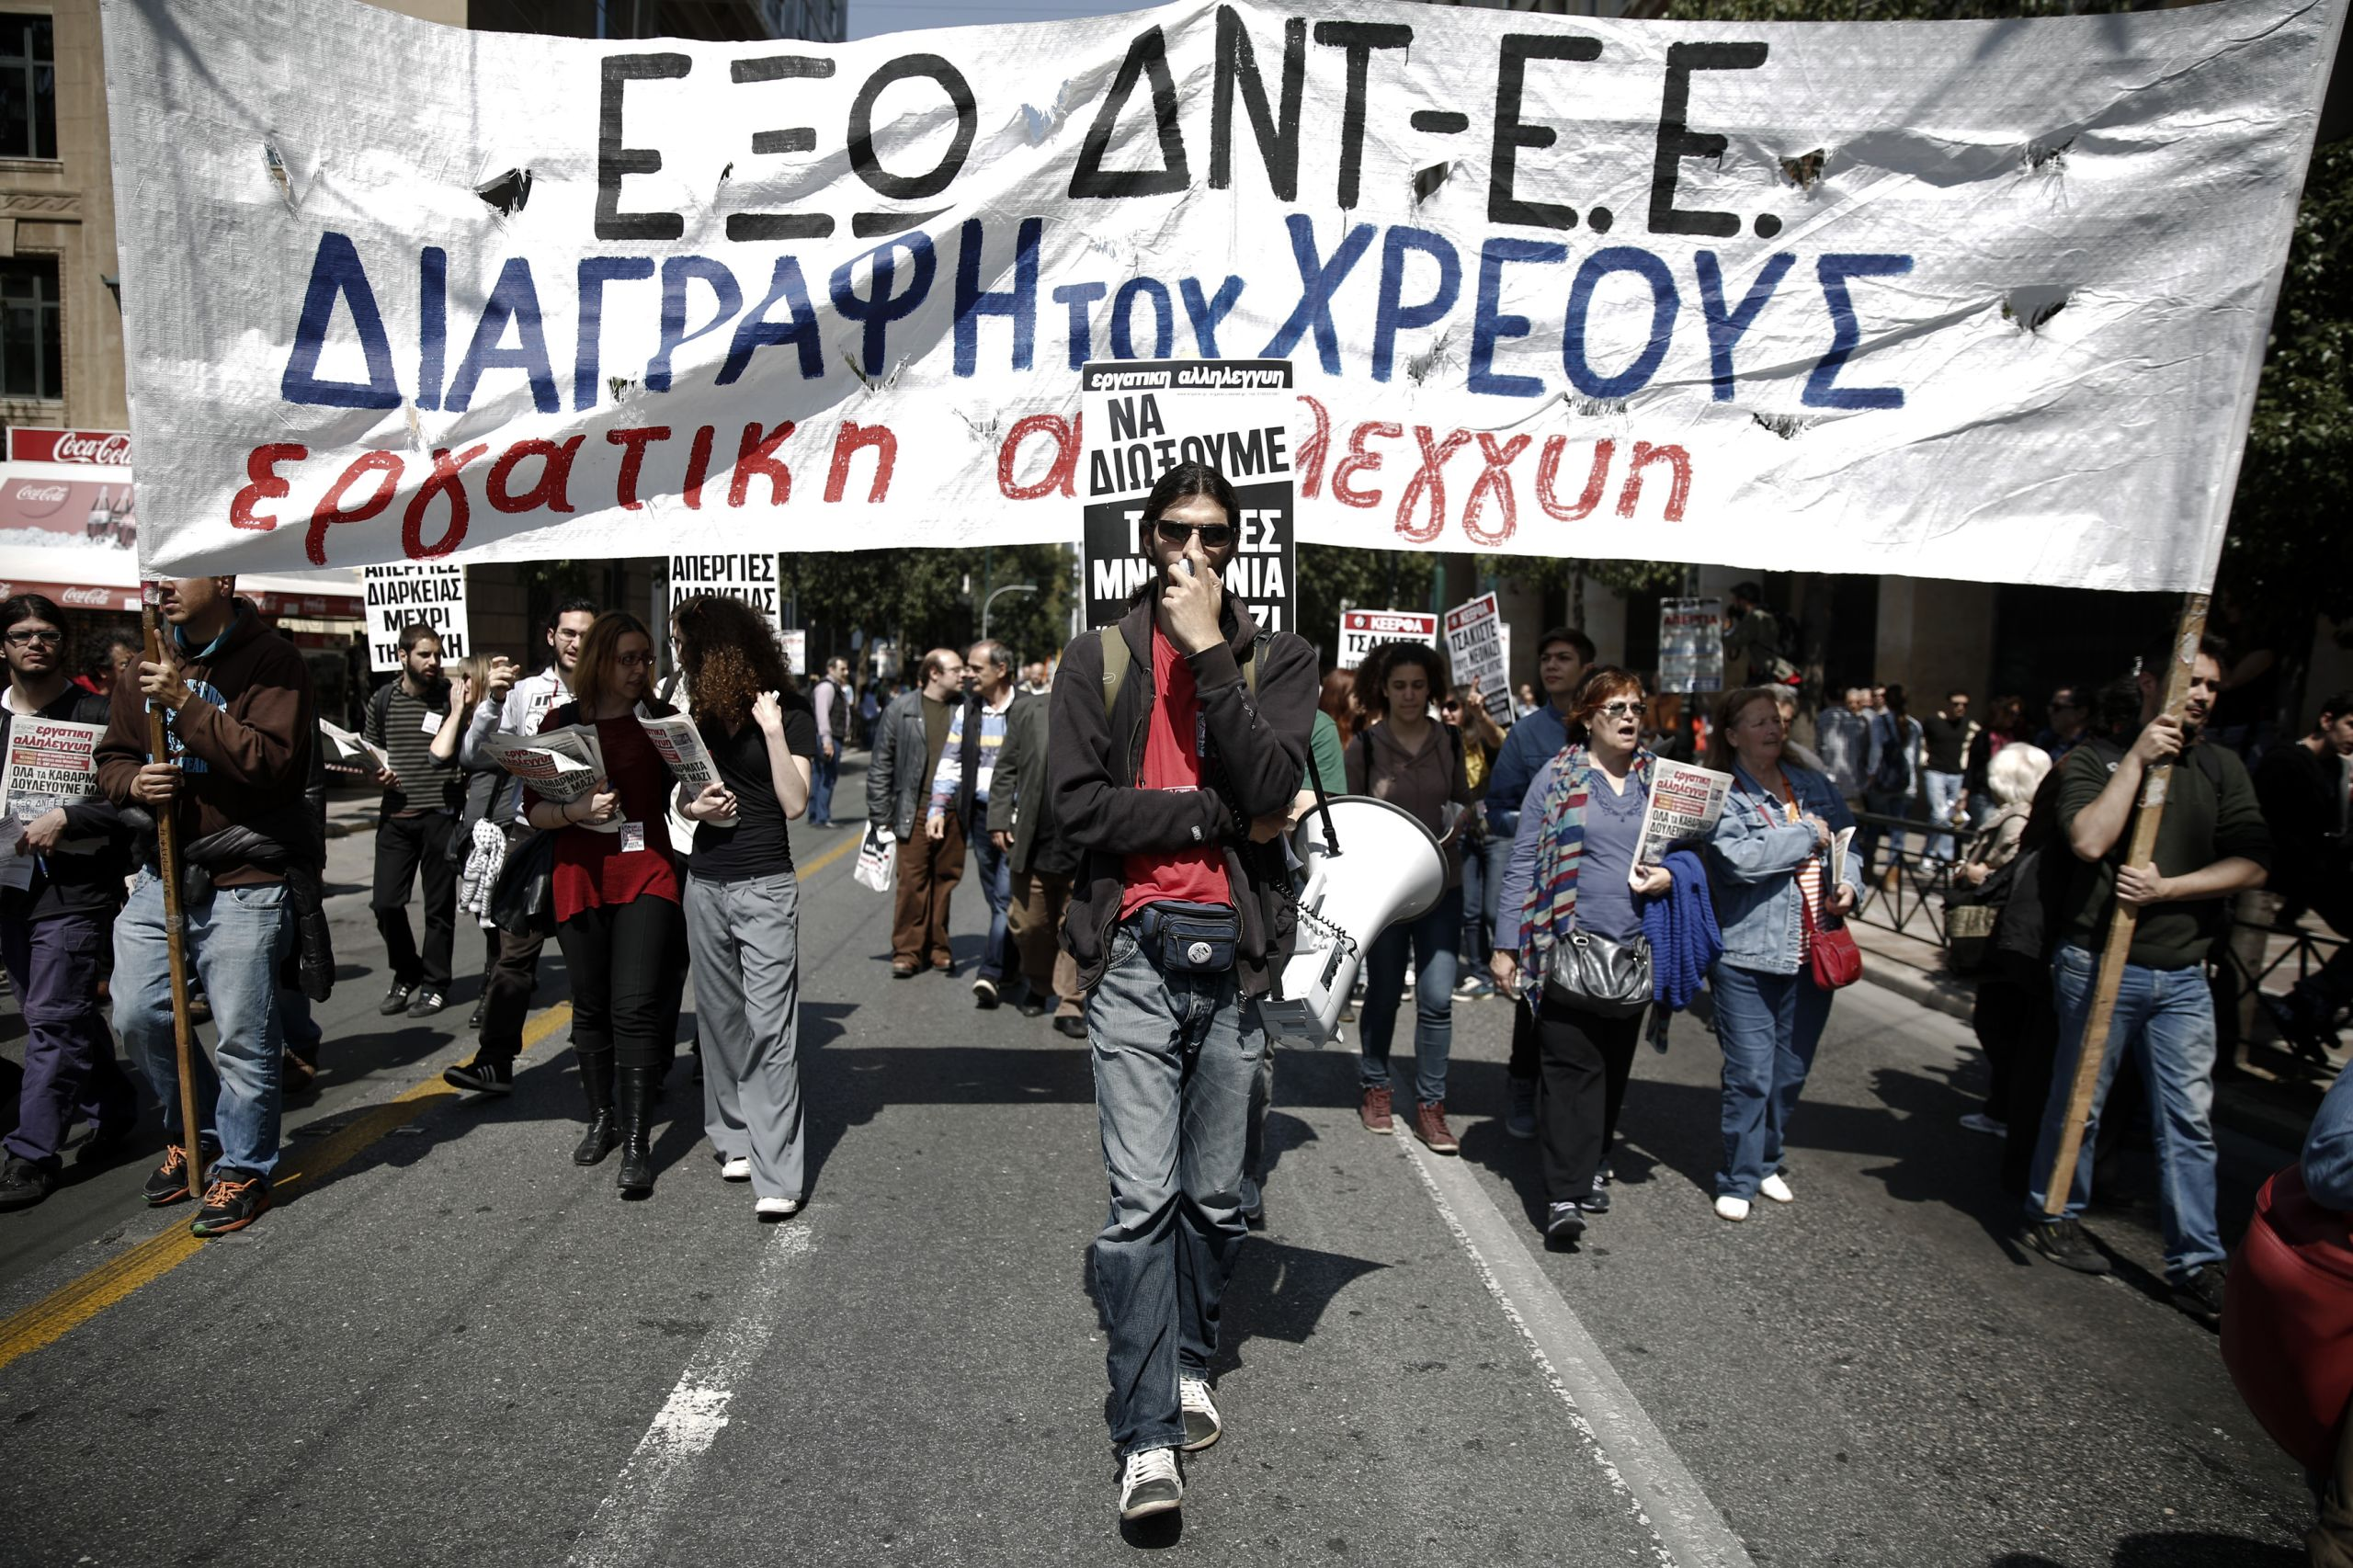 Demonstrators in Athens, April 2014, protesting against austerity policies imposed by Greece's foreign creditors. Photo Credit: REUTERS/Yorgos Karahalis